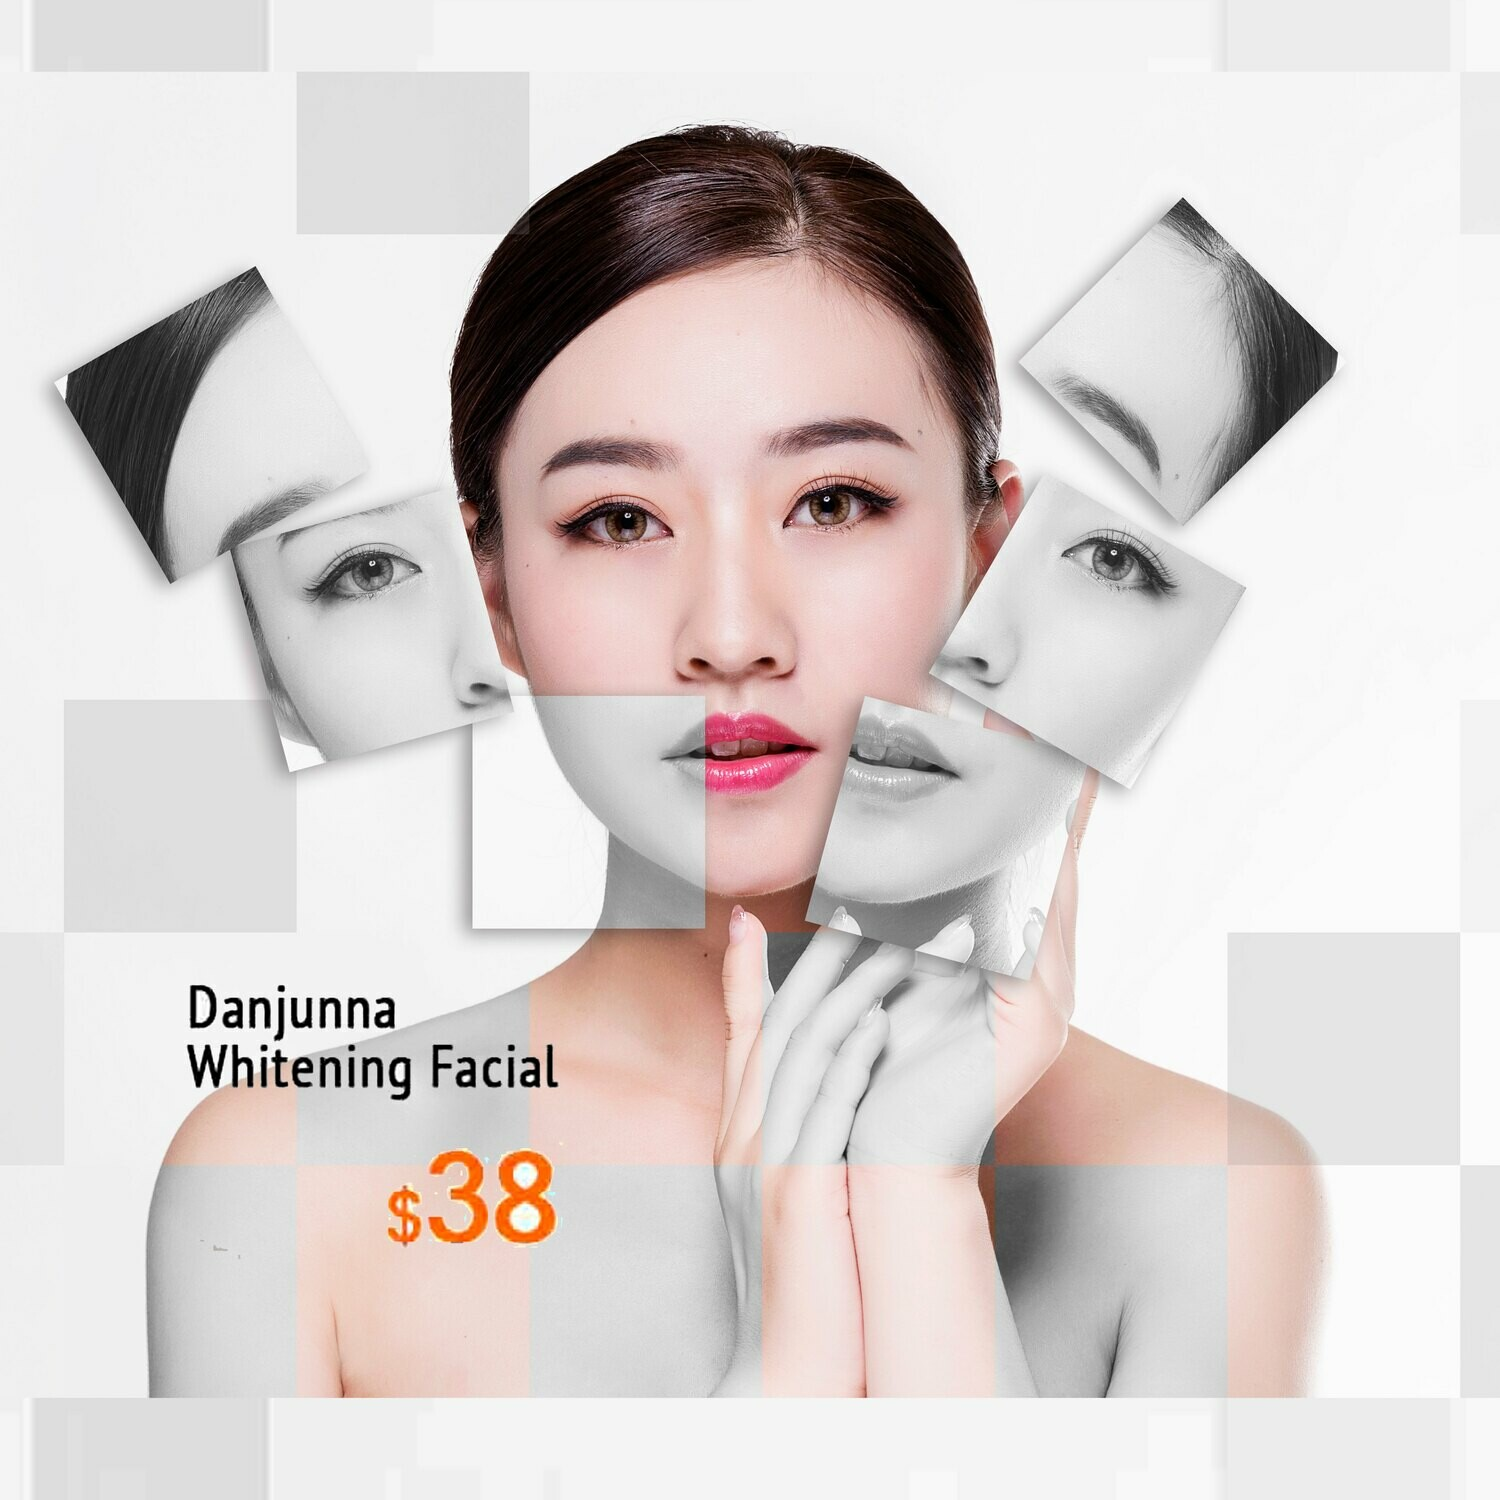 Danjunna Whitening Facial Trial